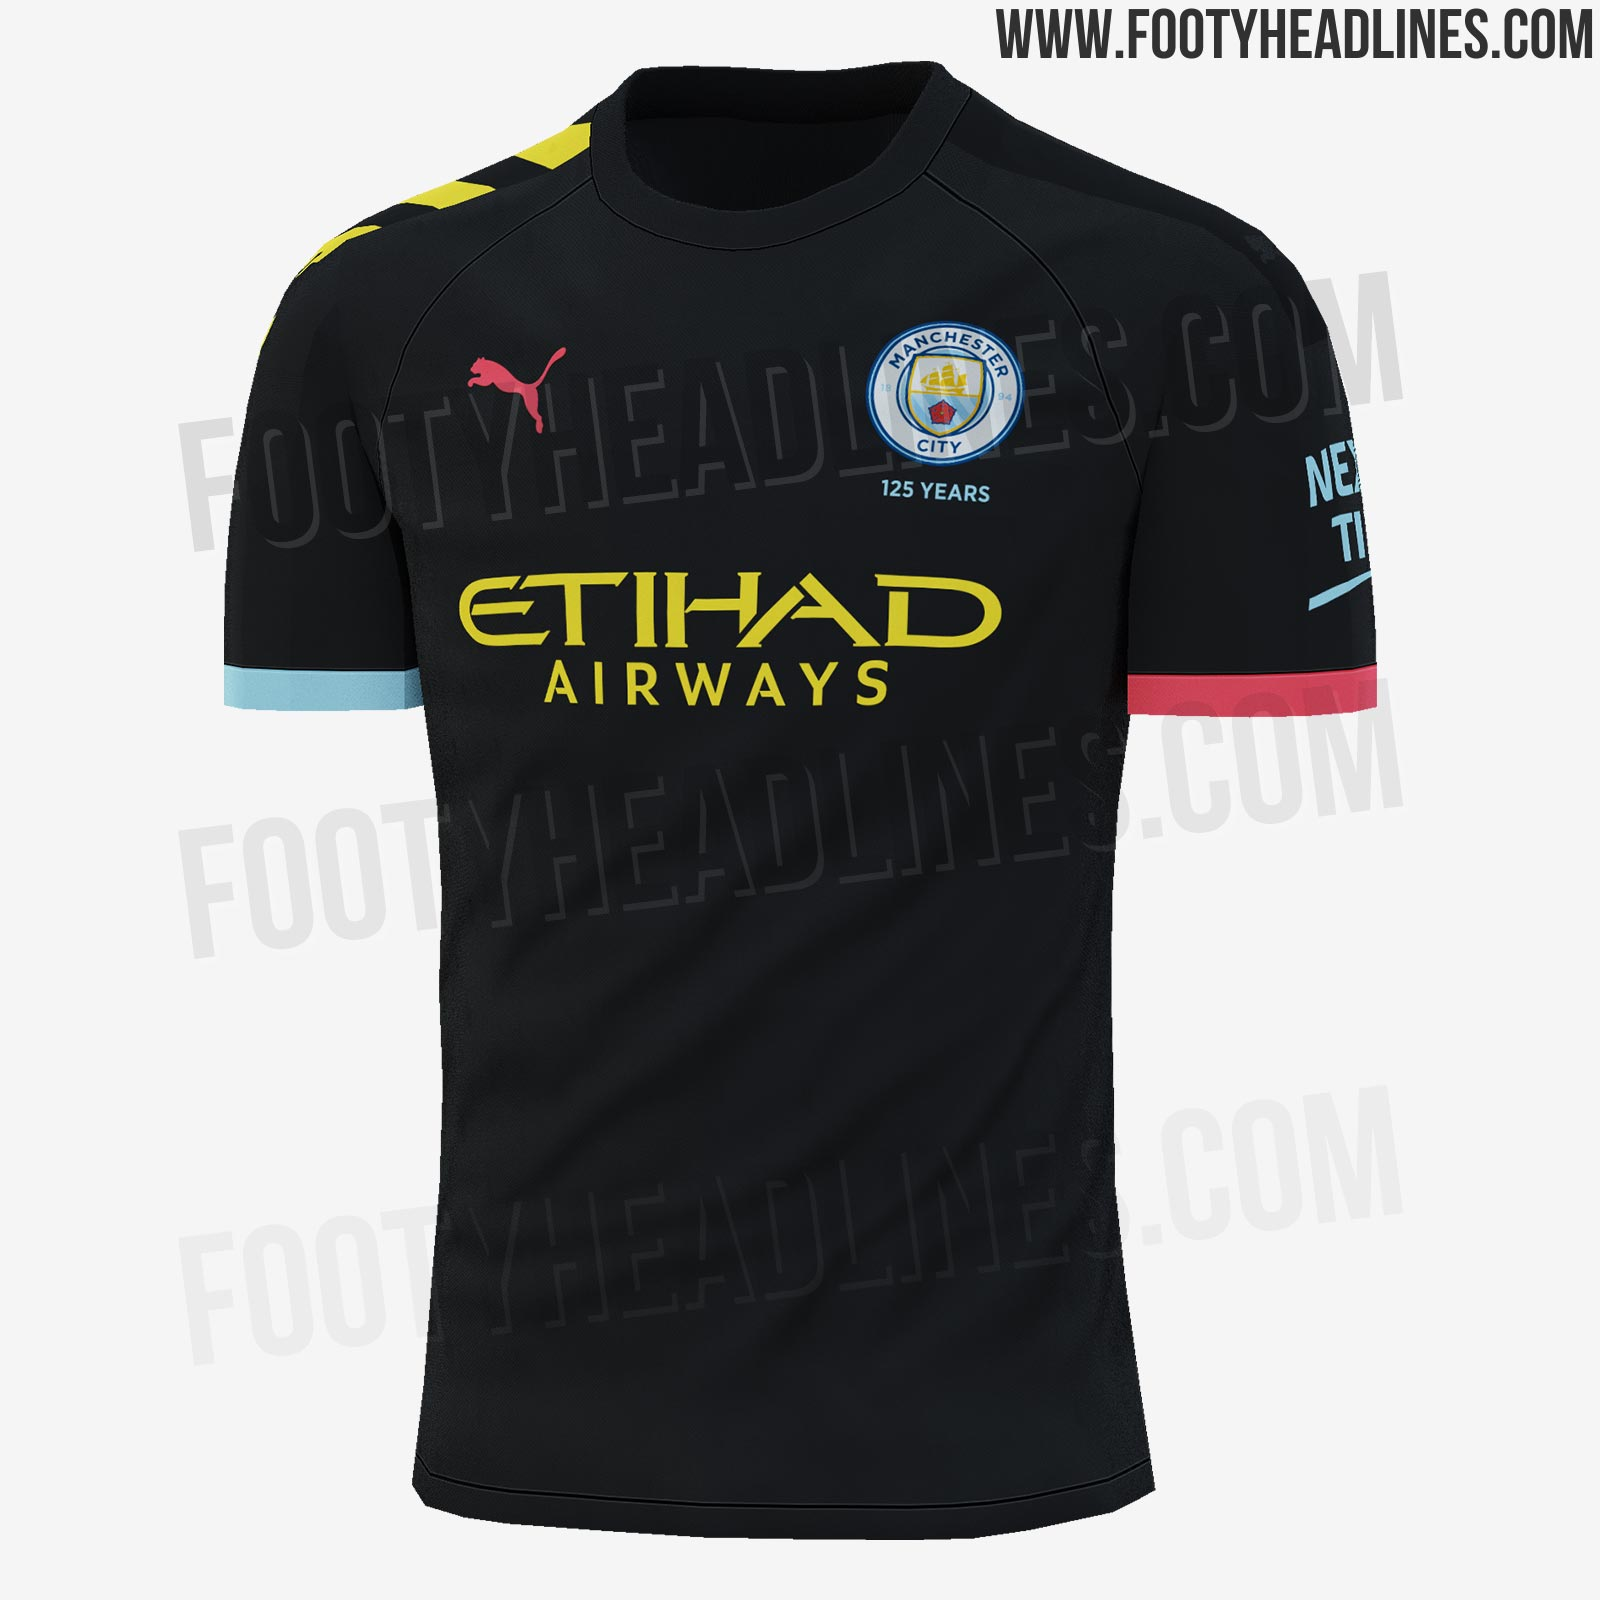 Manchester City 19-20 Away Kit Leaked - New Pictures ...